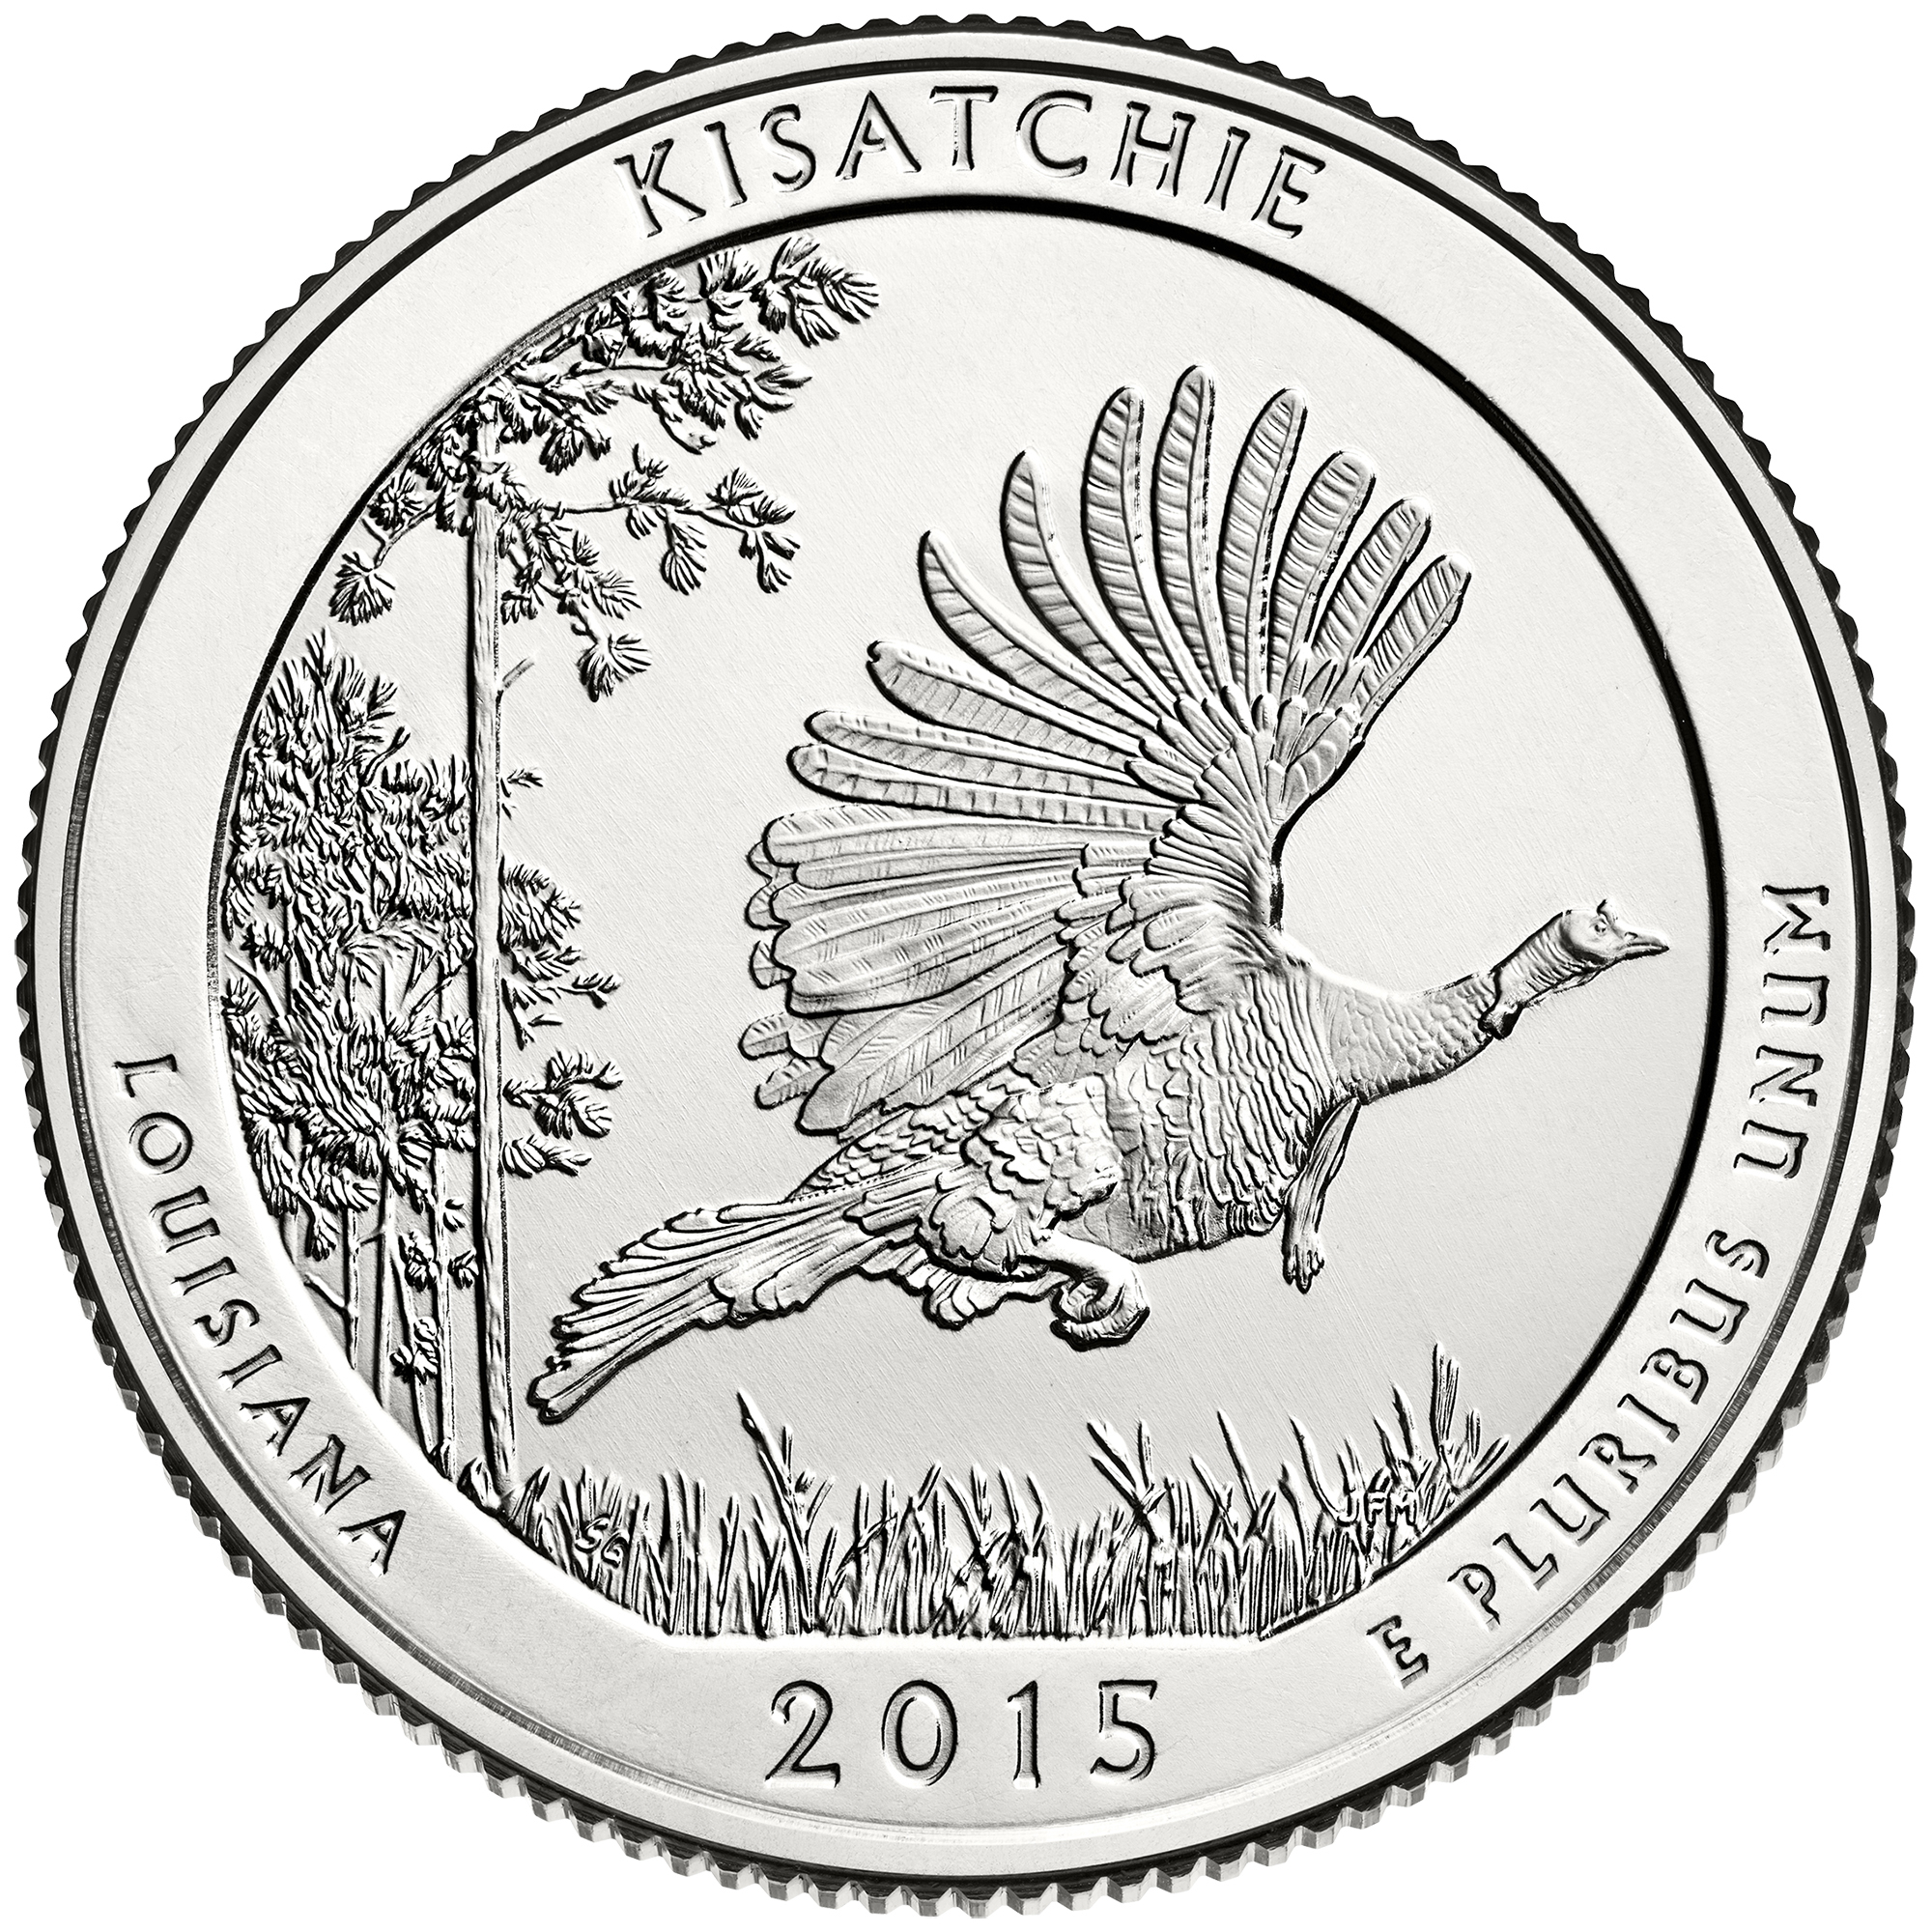 2015 America The Beautiful Quarters Coin Kisatchie Louisiana Uncirculated Reverse